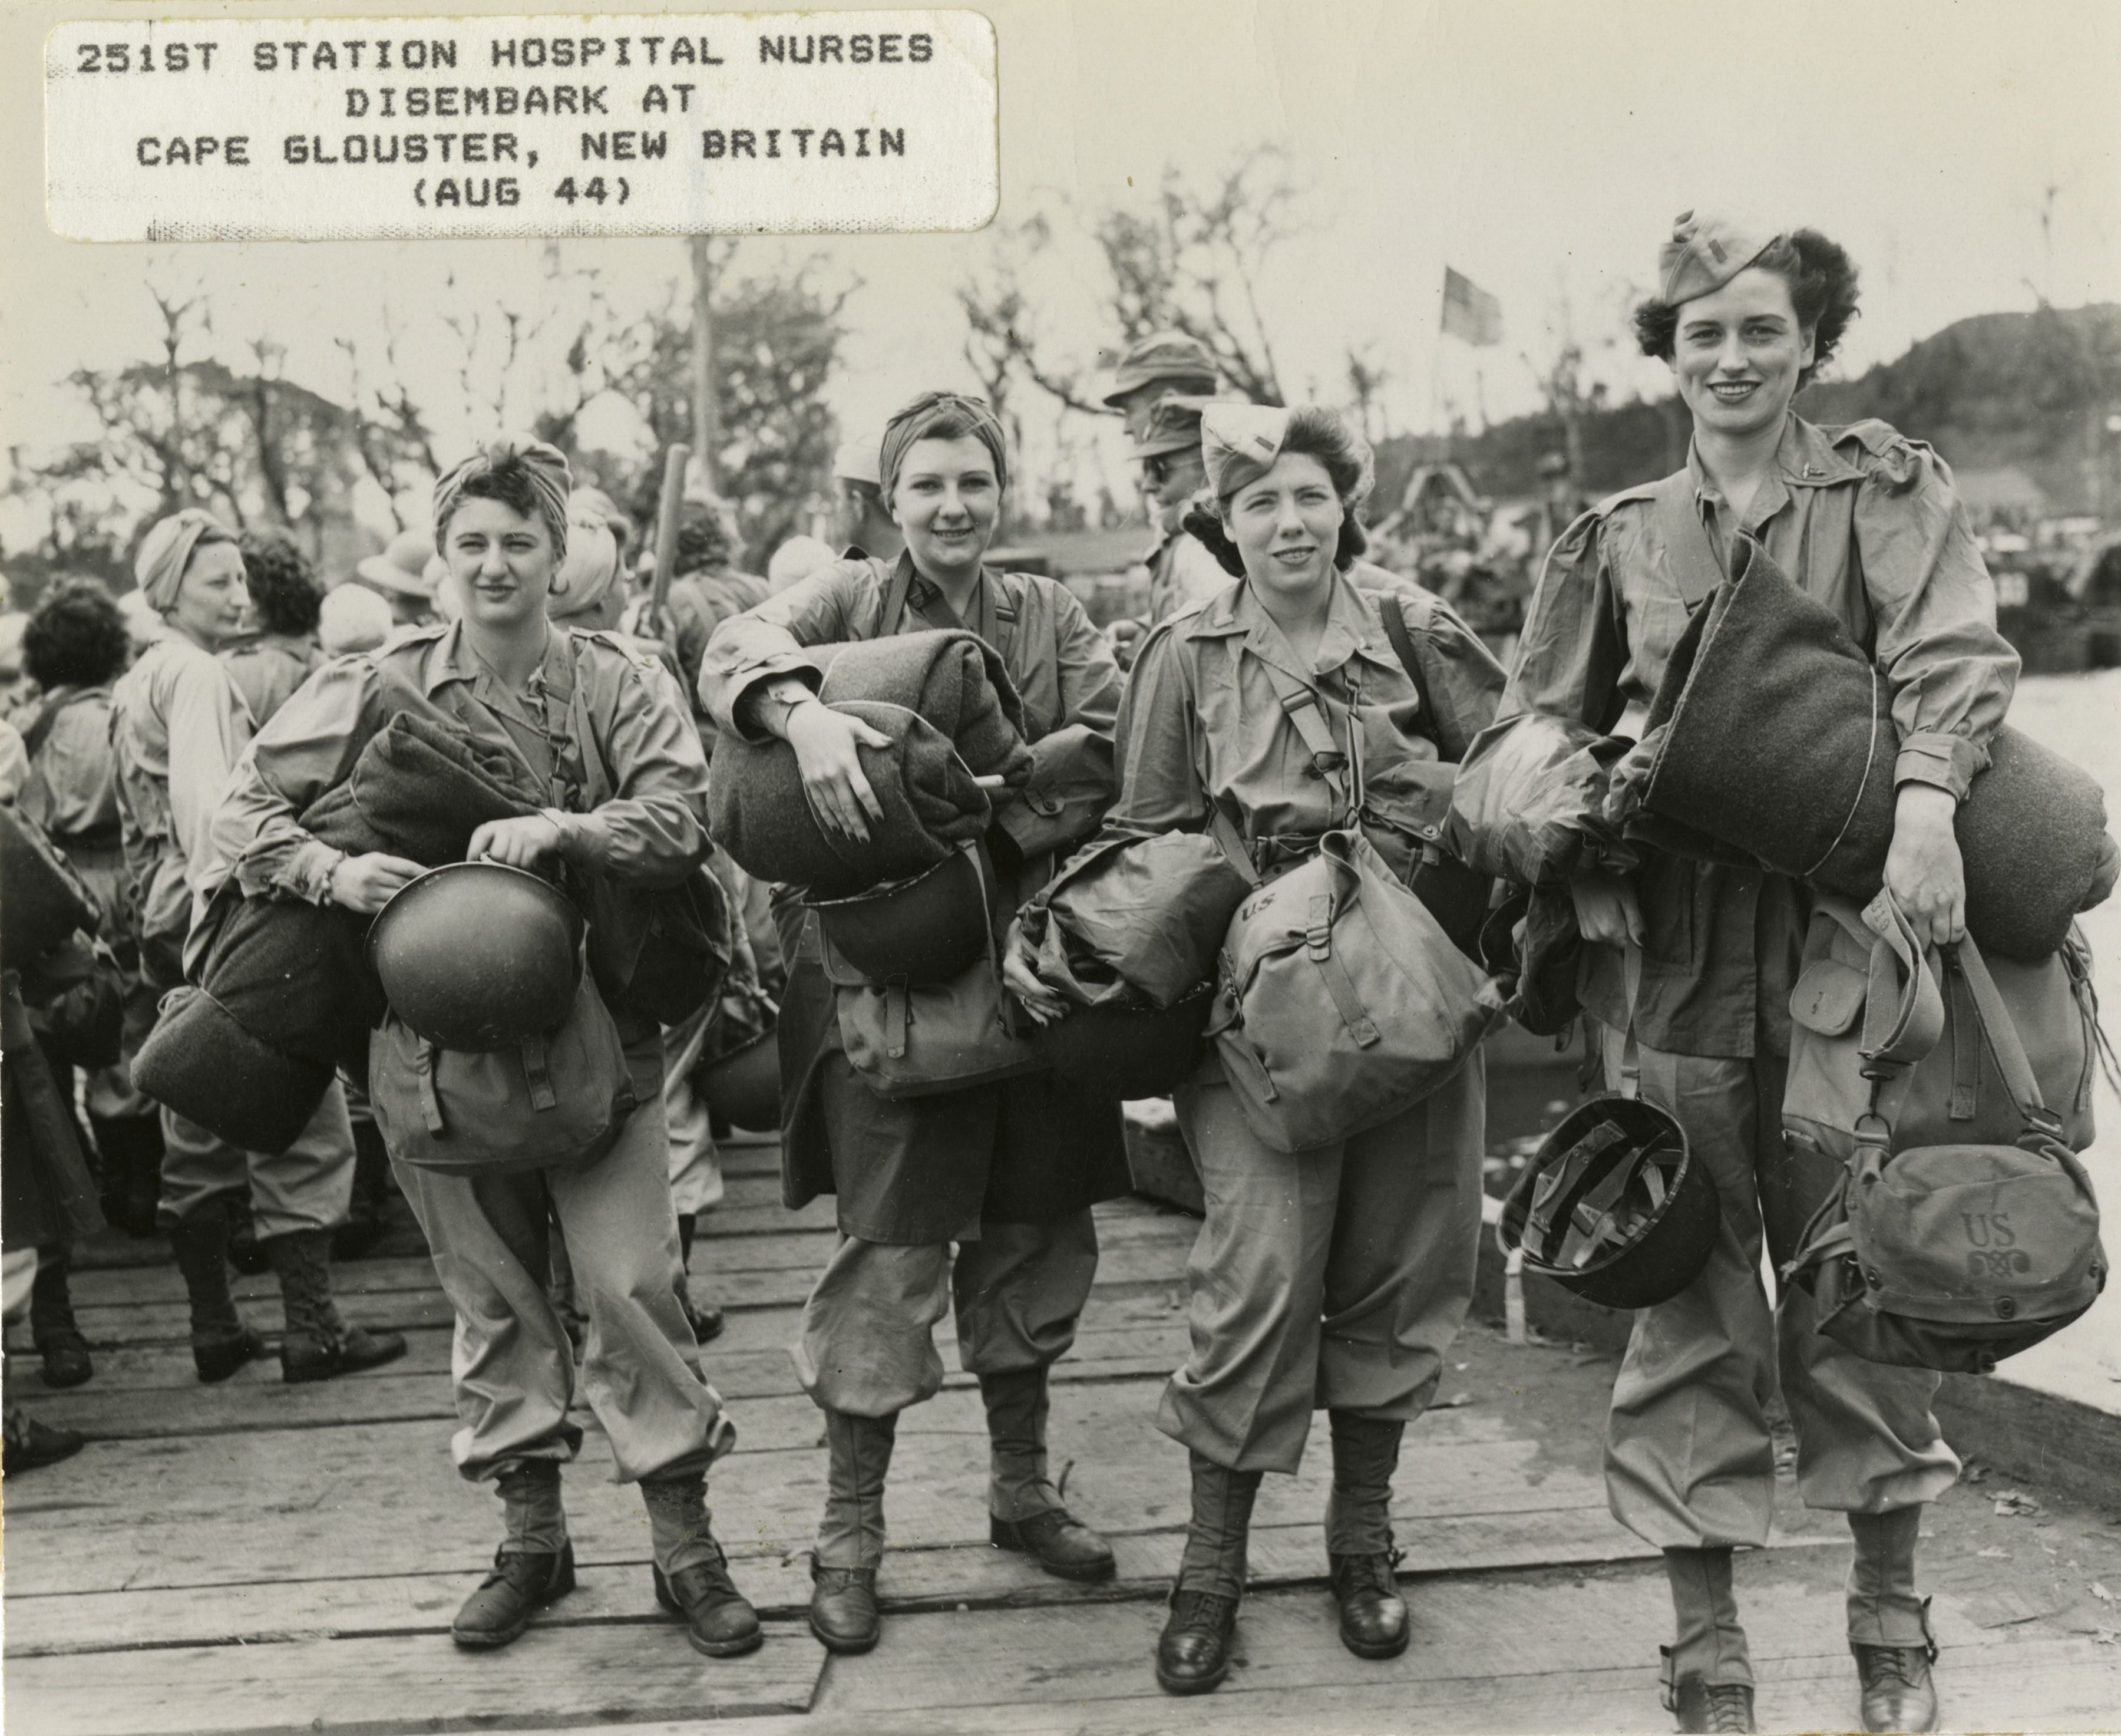 Four nurses in standard issue Army uniform carry all their